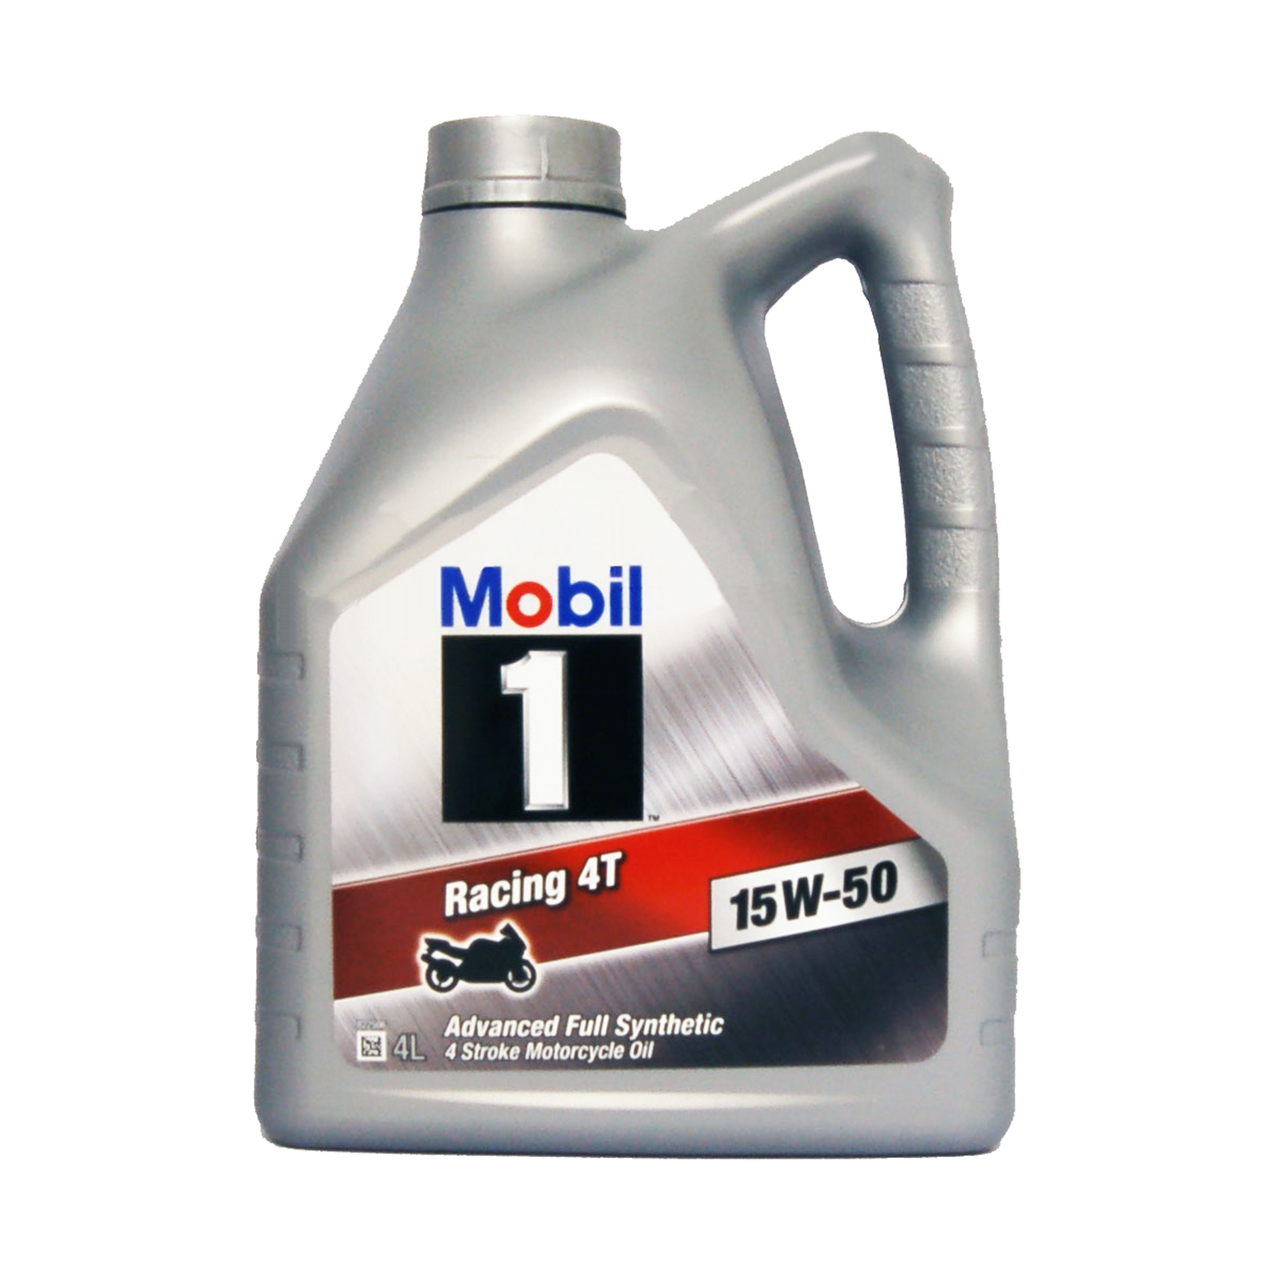 Mobil 1 Racing 4T 15w50 Engine Oil 4 Litre